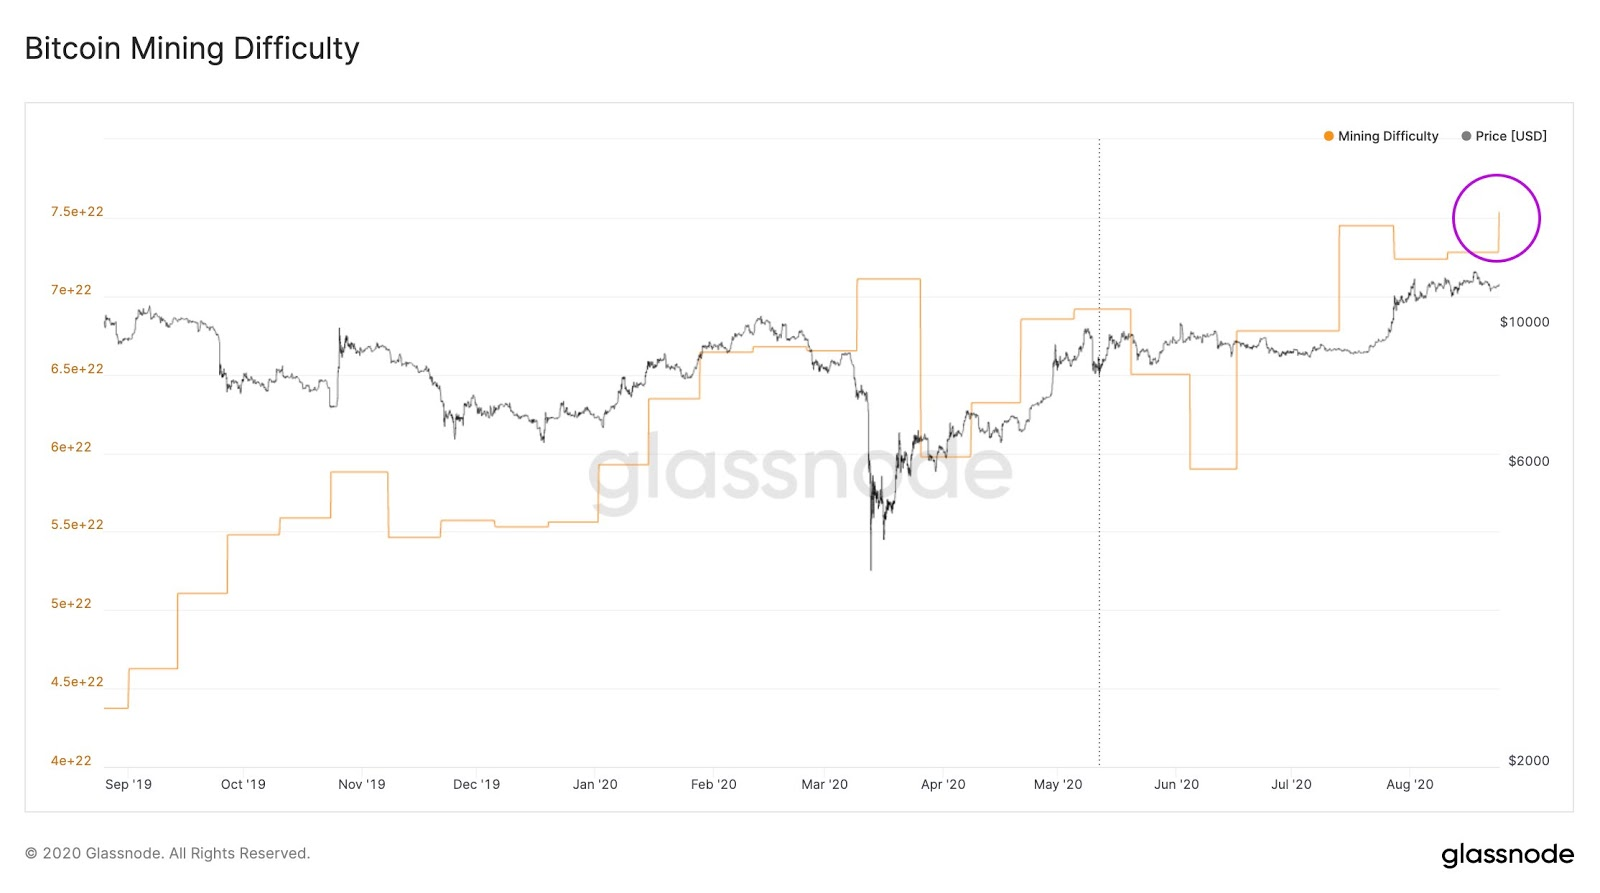 Bitcoin mining difficulty alongside BTC price. Source: Glassnode